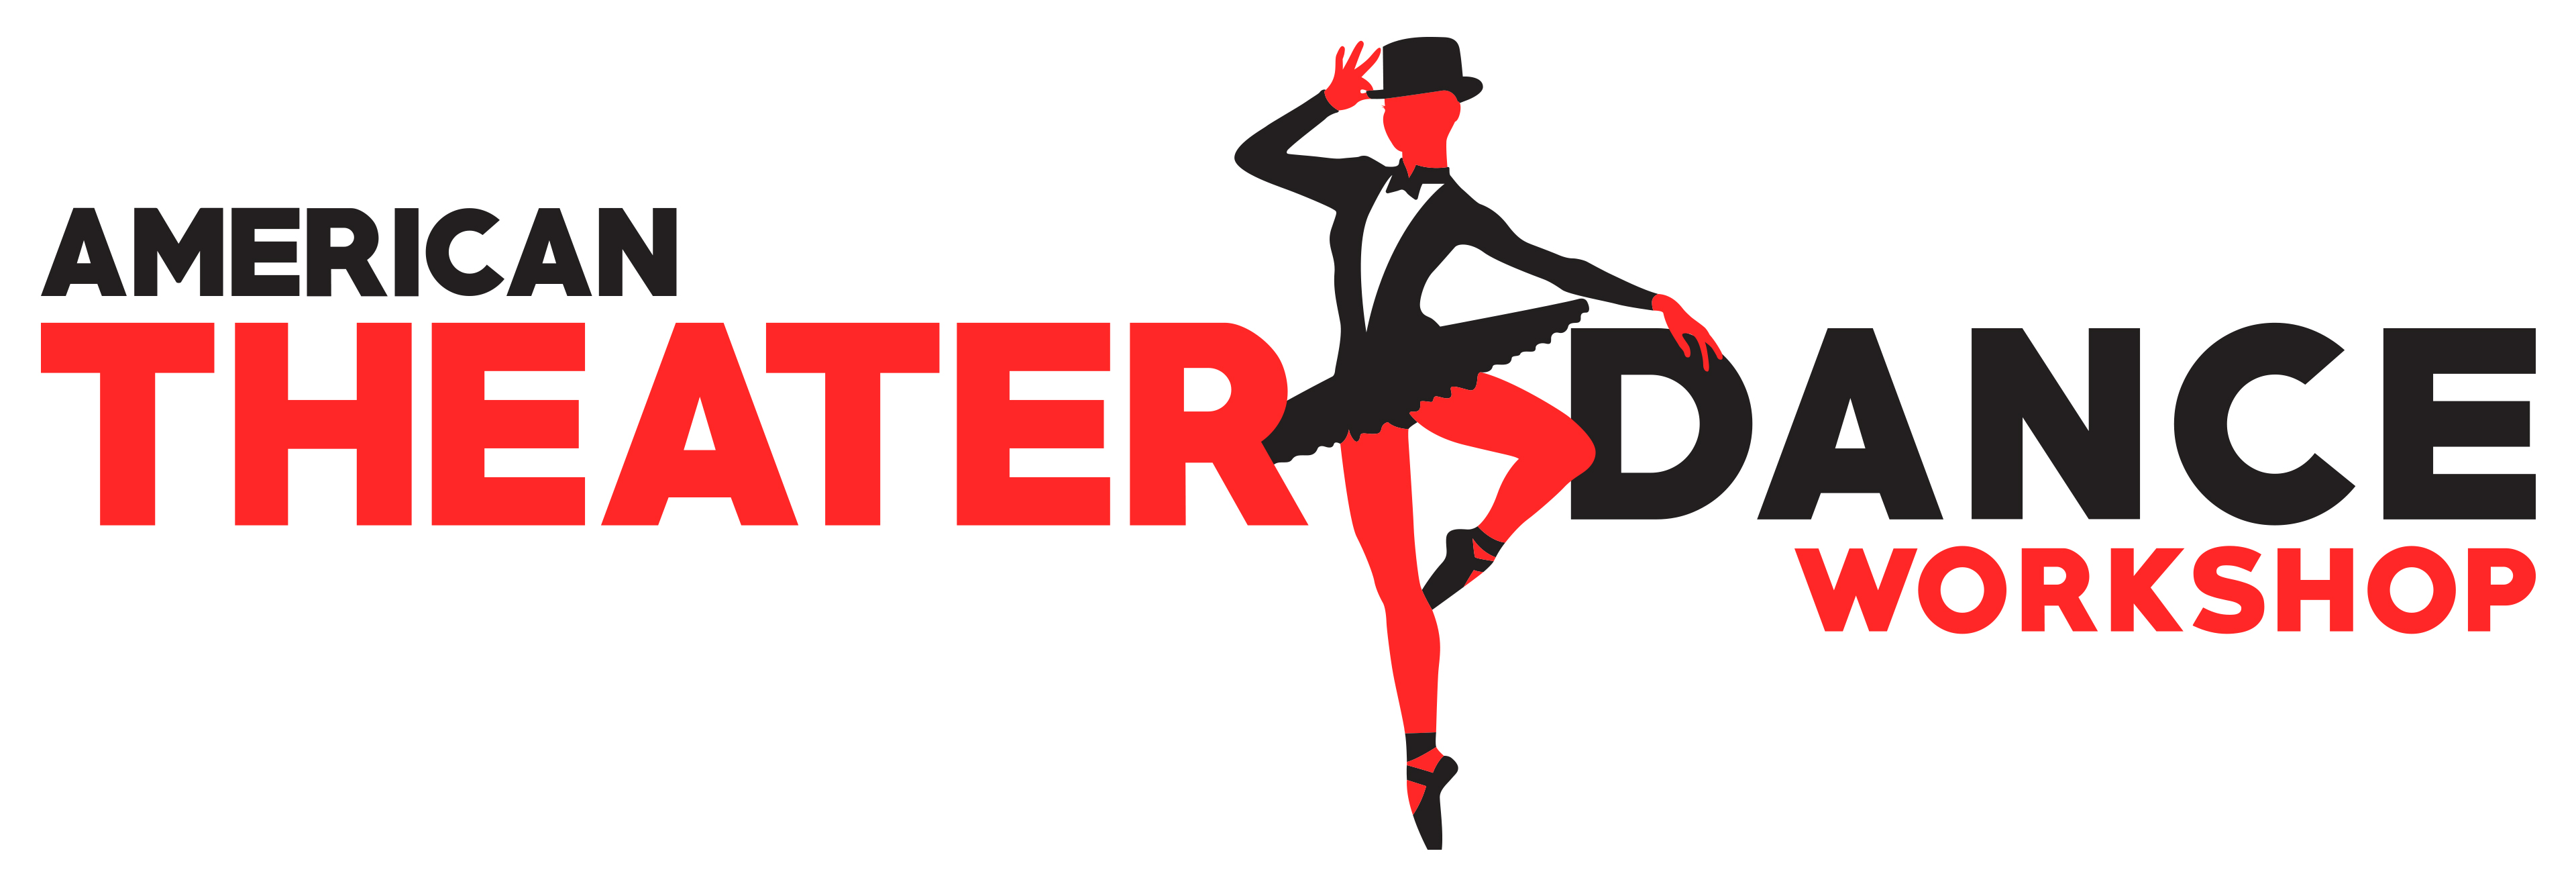 American Theater Dance Workshop Grand Opening on July 8, 2018